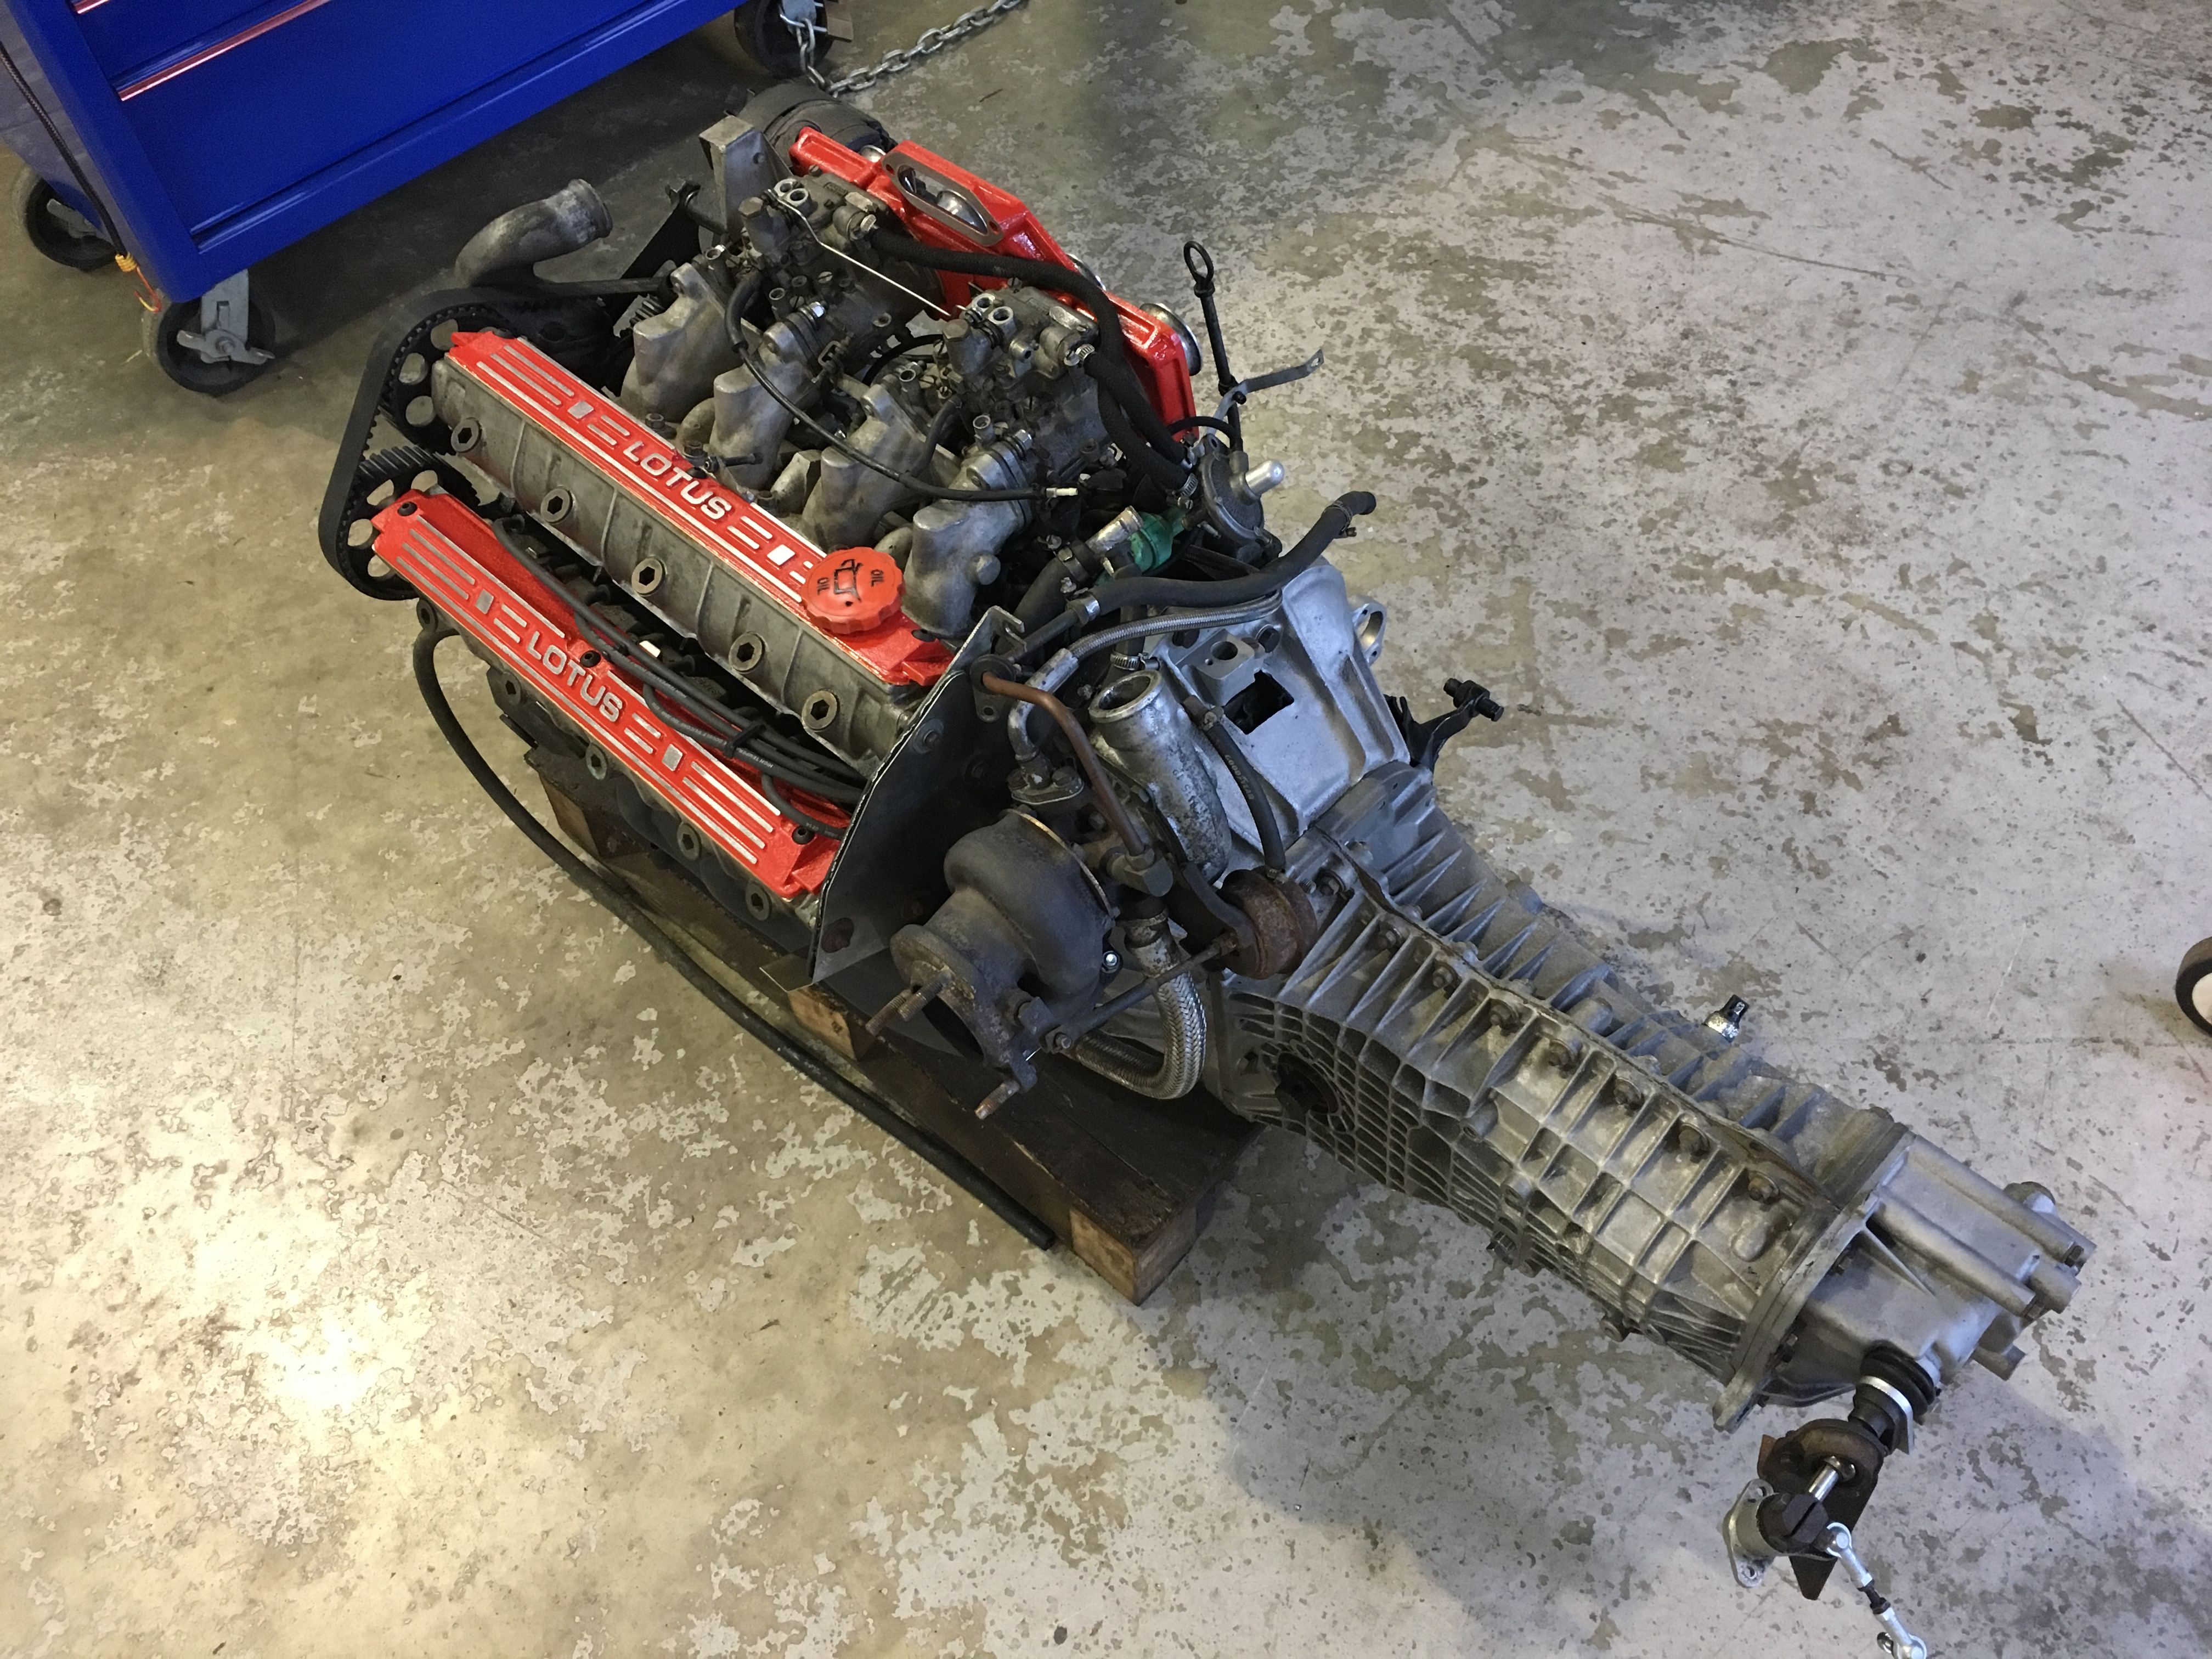 Lotus Esprit 4 Cylinder 900 series engine being stripped down repaired and rebuilt.